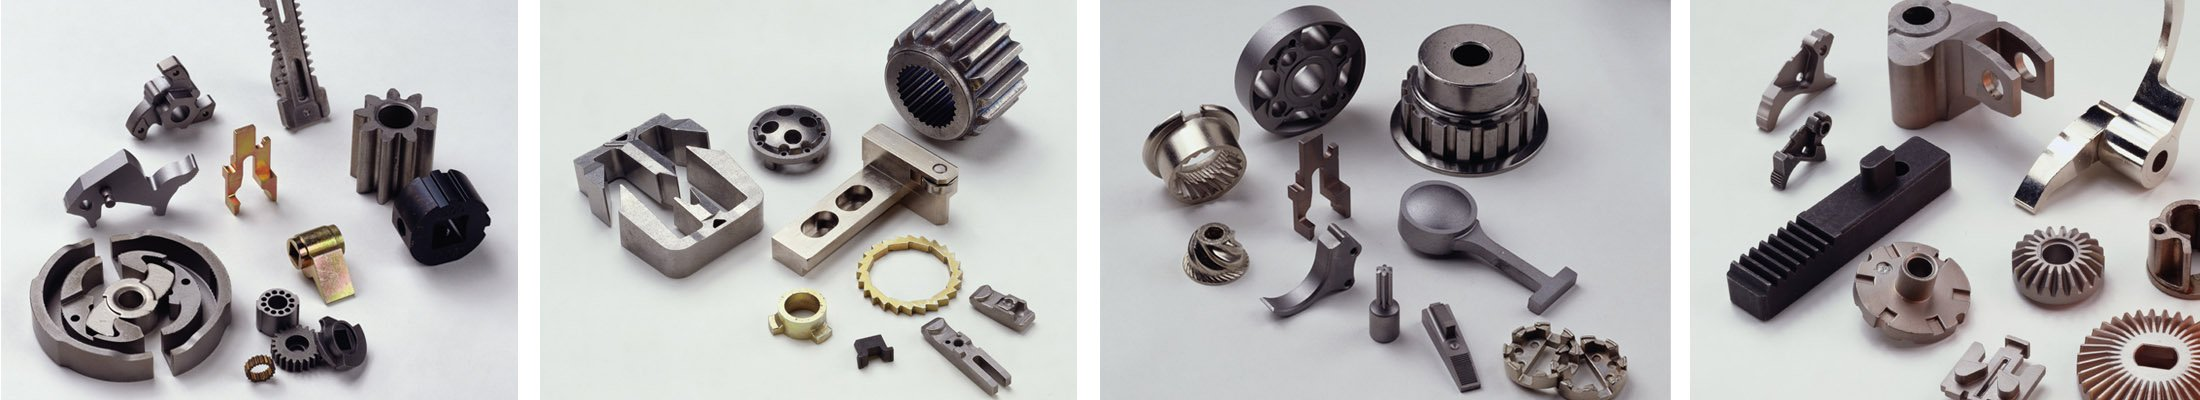 Manufacturer of sintered metal parts and components